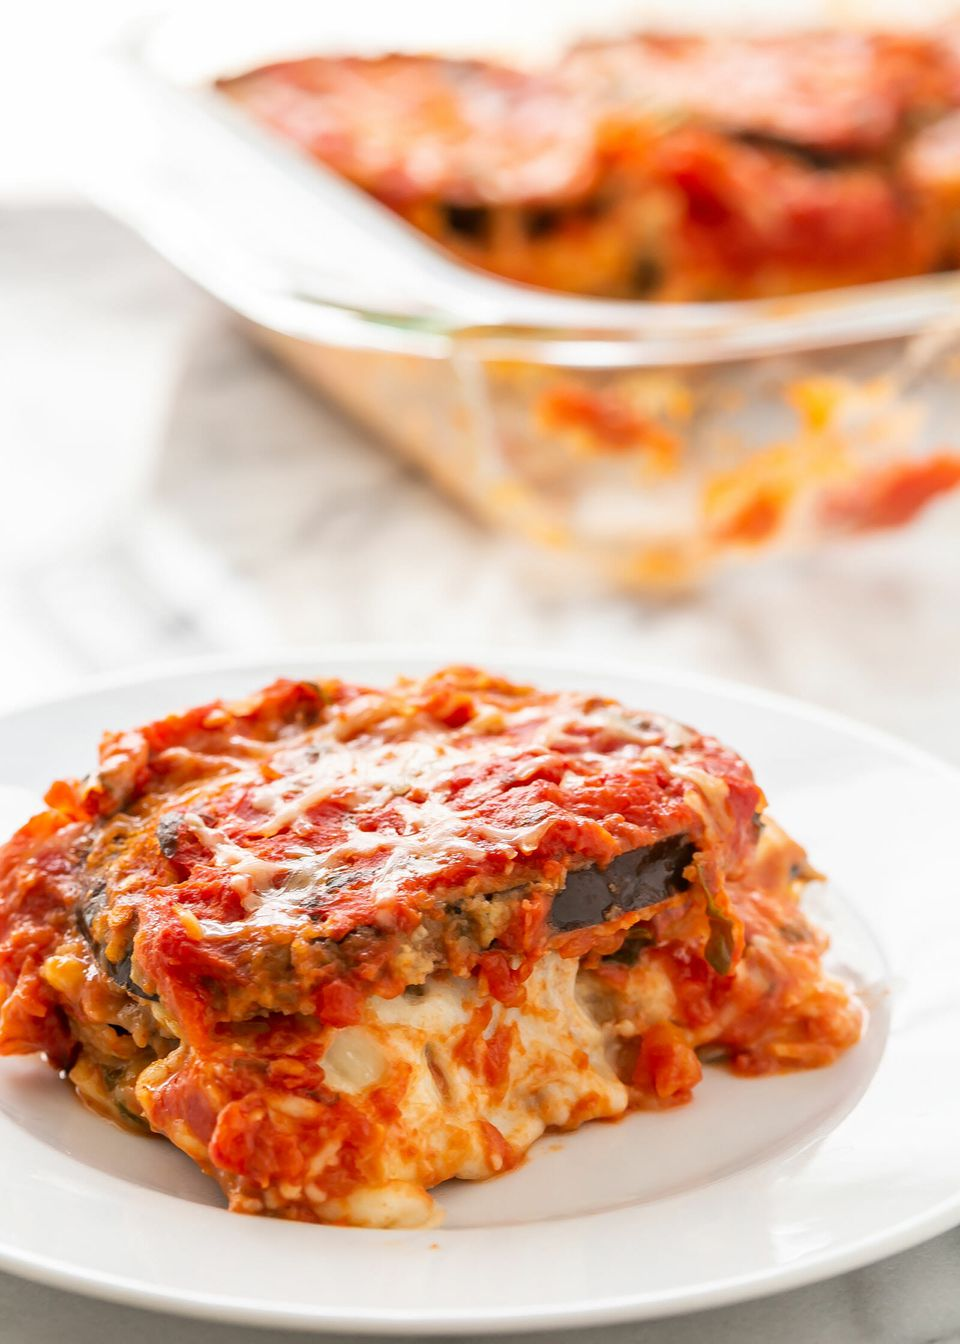 A slice of eggplant parmesan on a plate with the tray behind it.